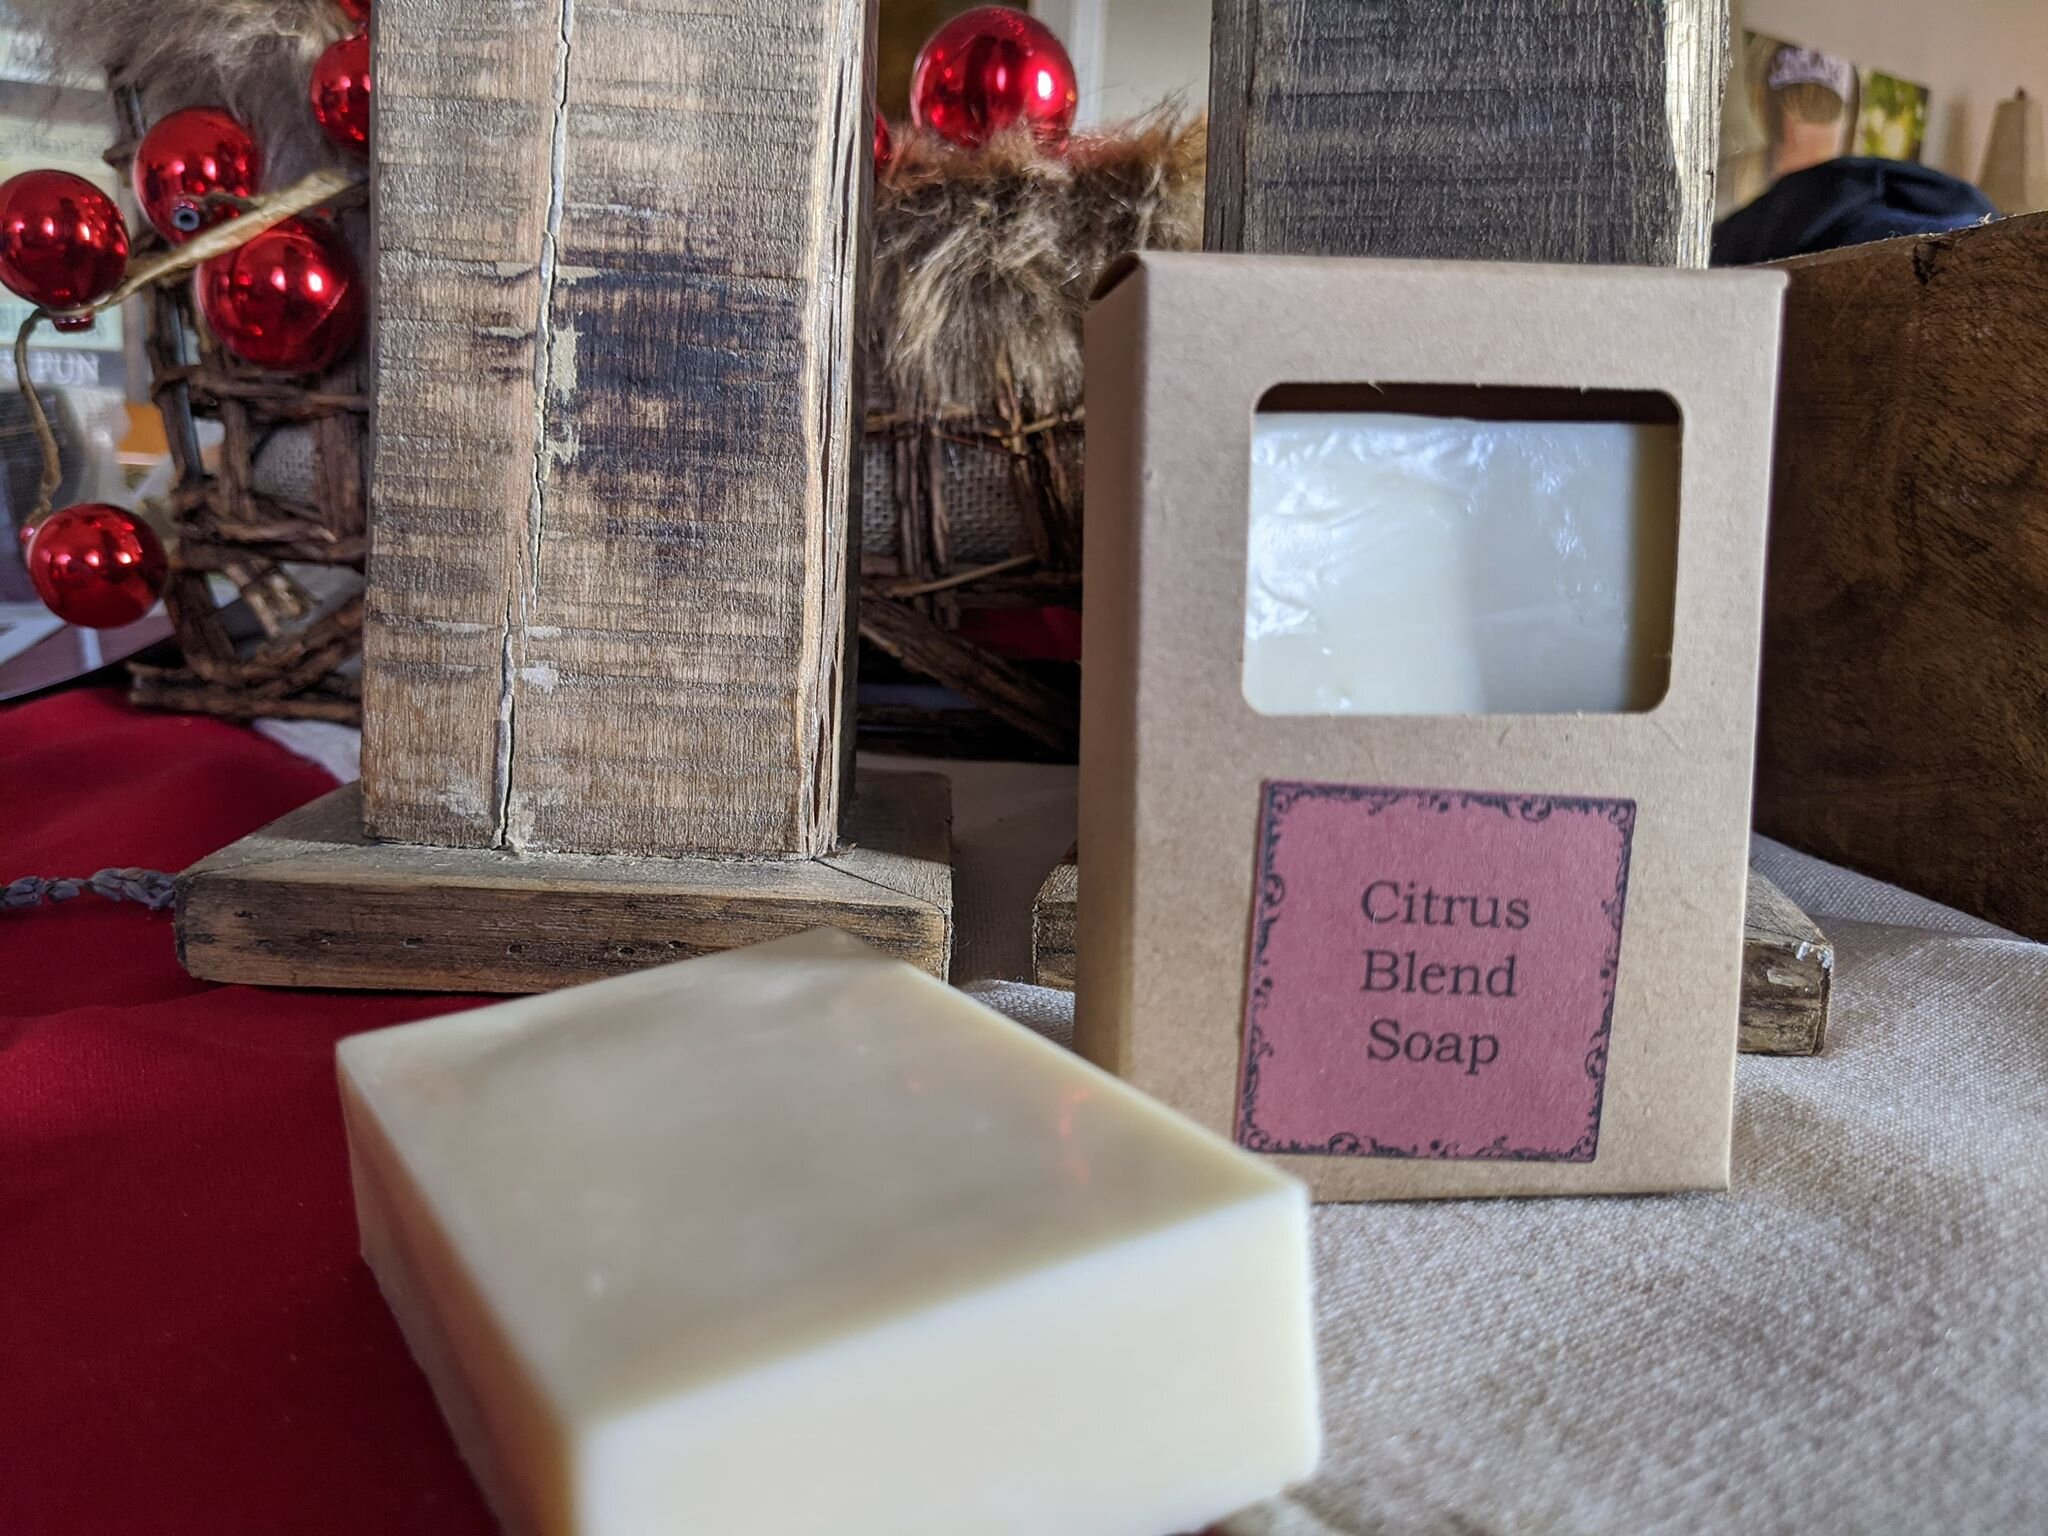 Citrus Blend Soap - The Simply Good Citrus Blend Soap is made using Goats milk with Grapefruit, Sweet Orange and Lemon Essential Oils.  This soap is designed to provide a clean, citrus smell that helps to reduce stress, lower blood pressure, reduce pain and helps with skin conditions such as acne.